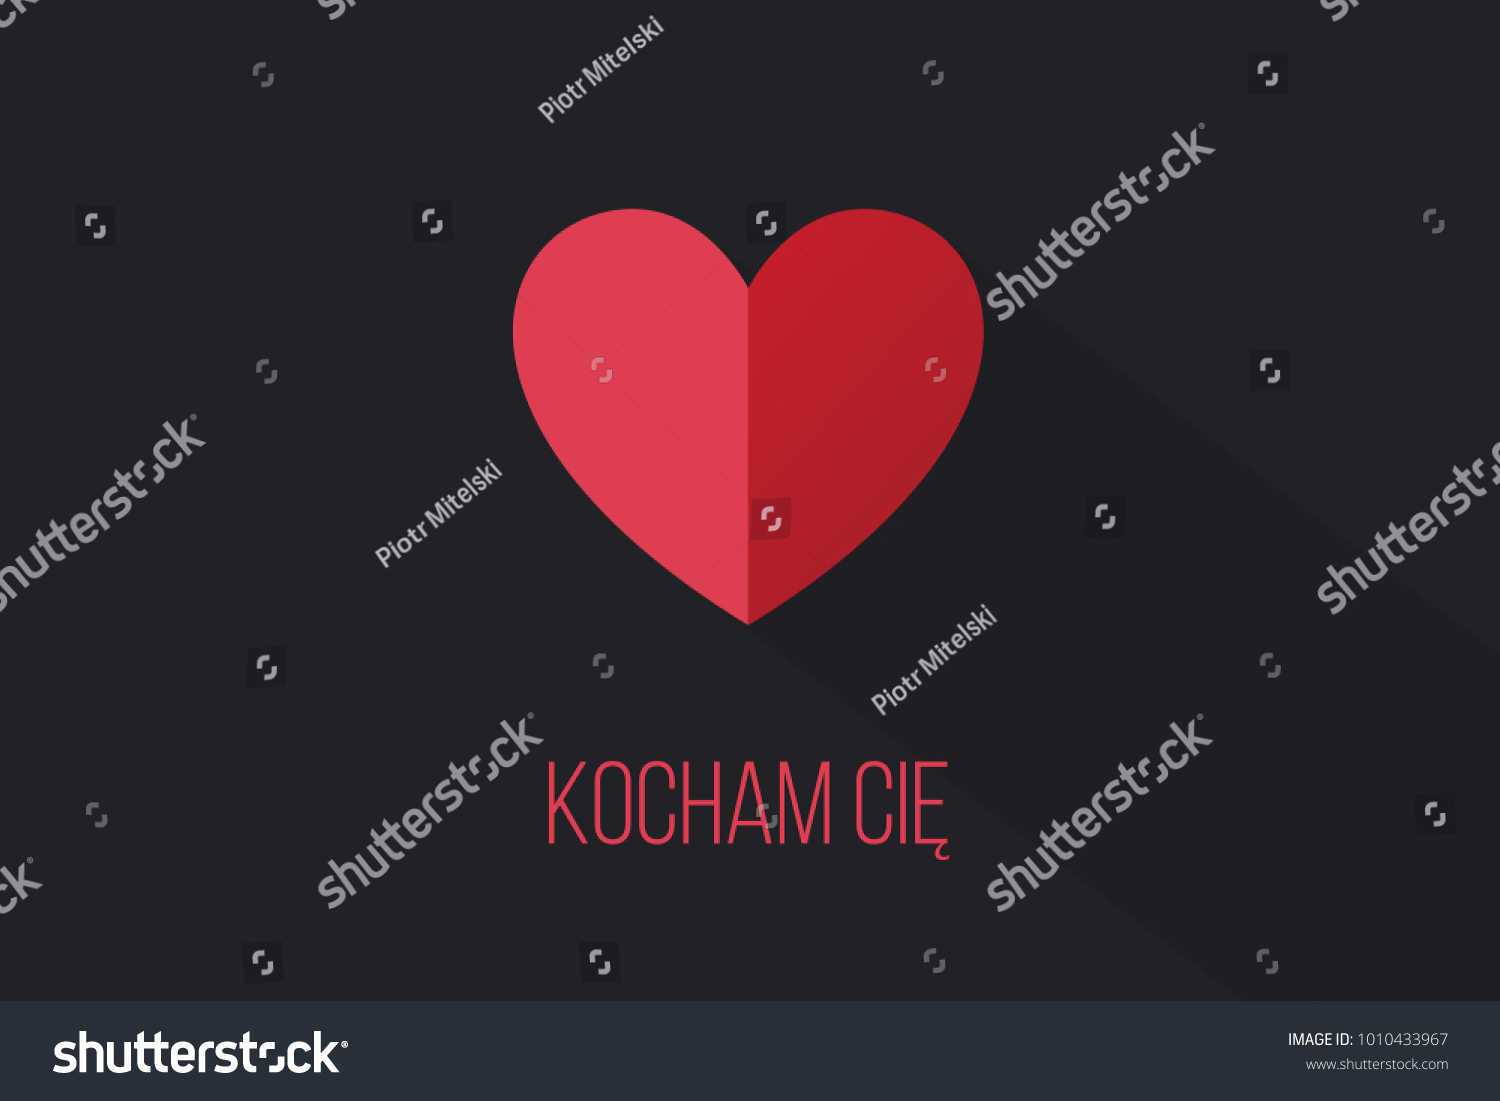 Red Heart On Dark Background Words Stock Illustration Royalty Free